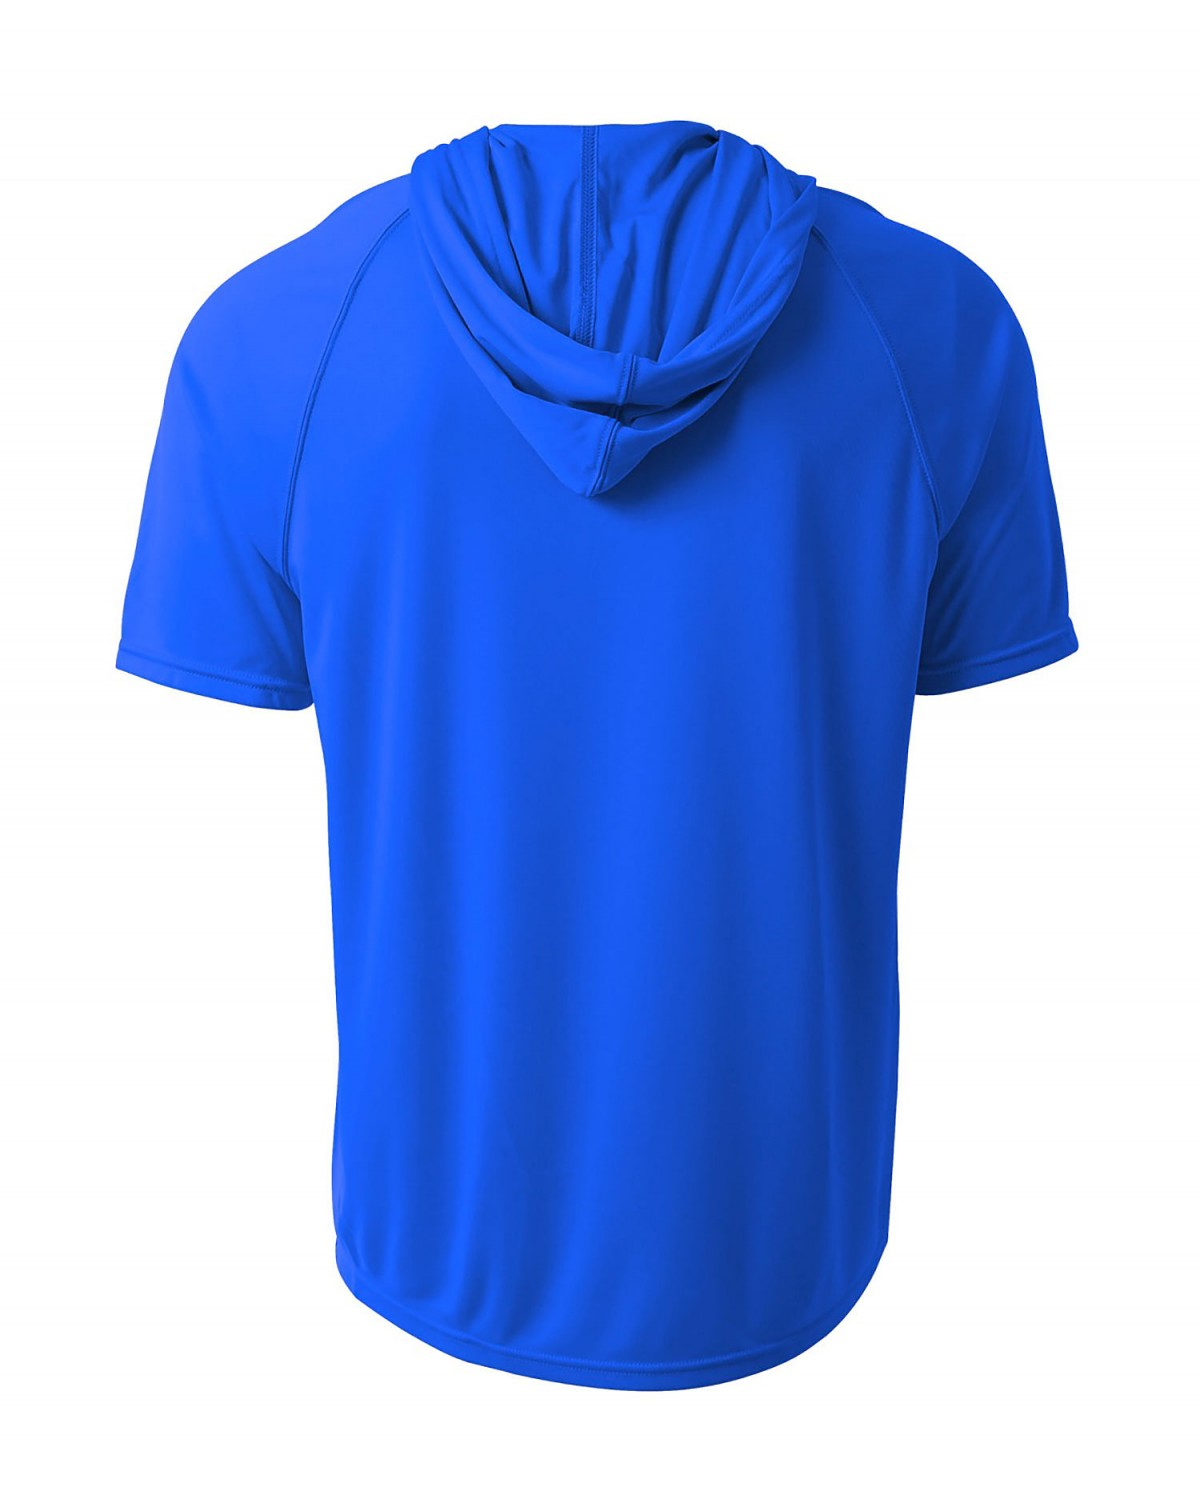 AA2201W American Apparel ROYAL BLUE